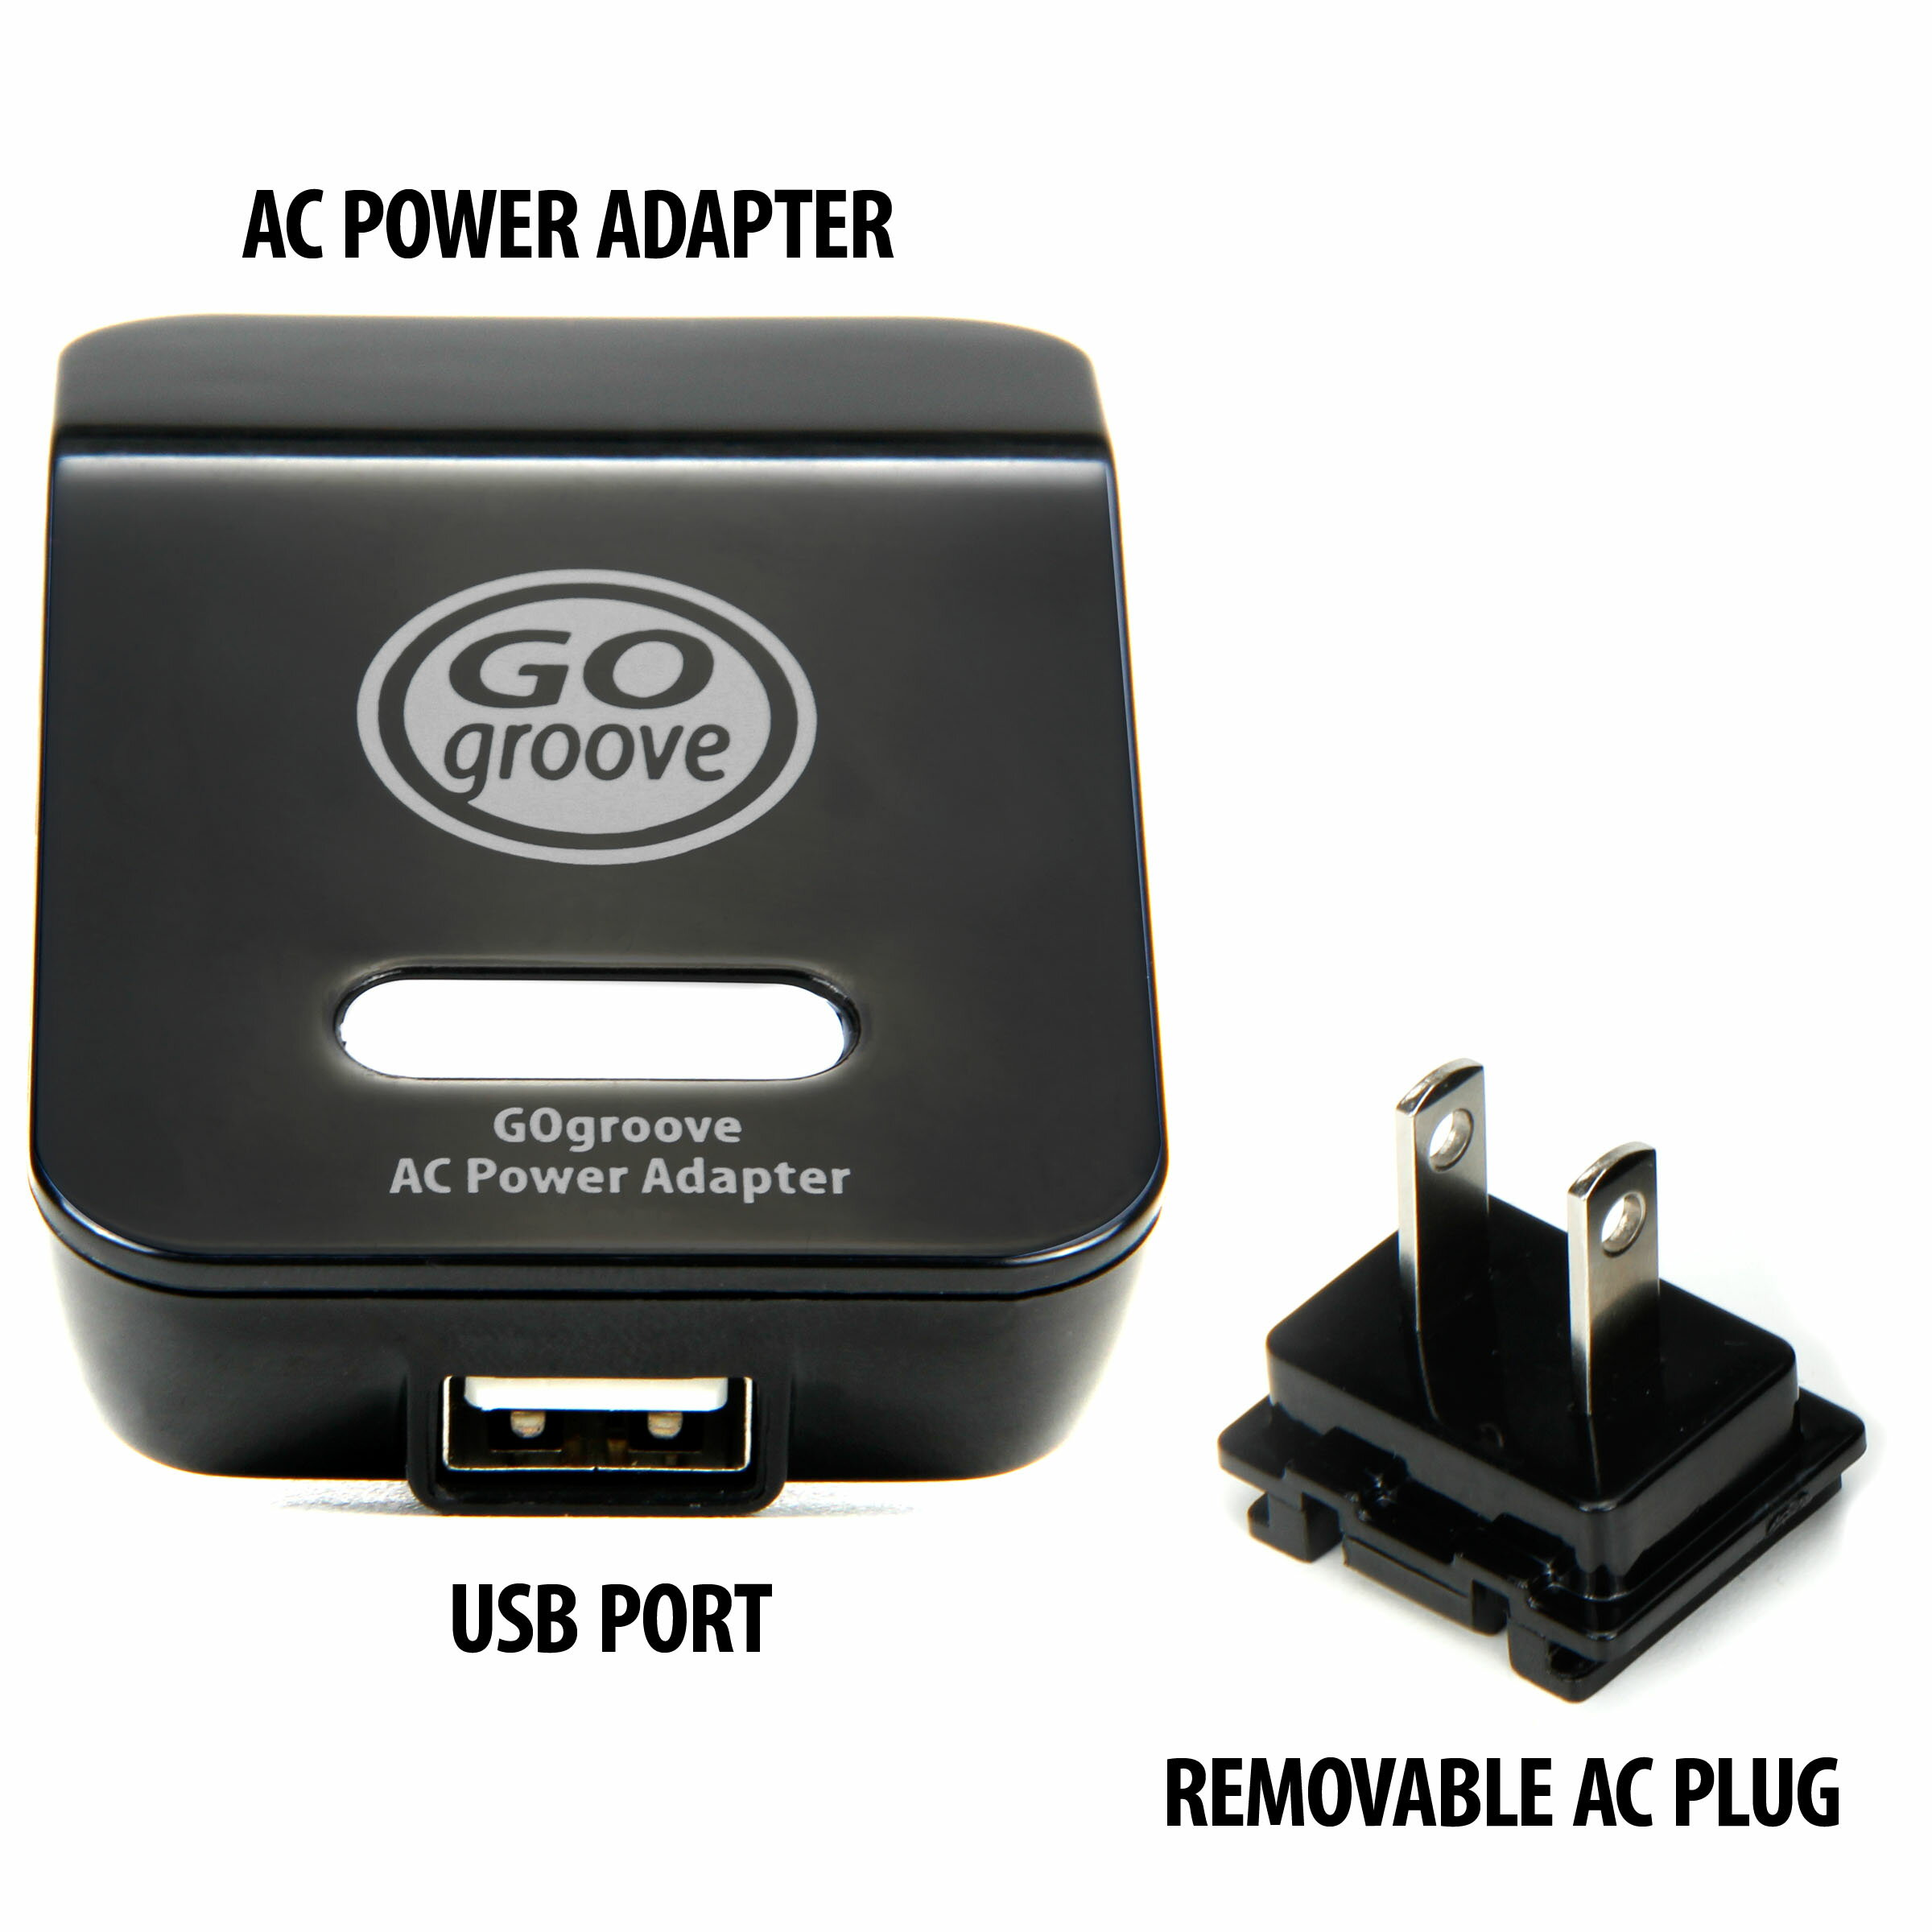 Universal USB Power Adapter Plug by GOgroove for many USB powered Portable Bluetooth Speakers 2